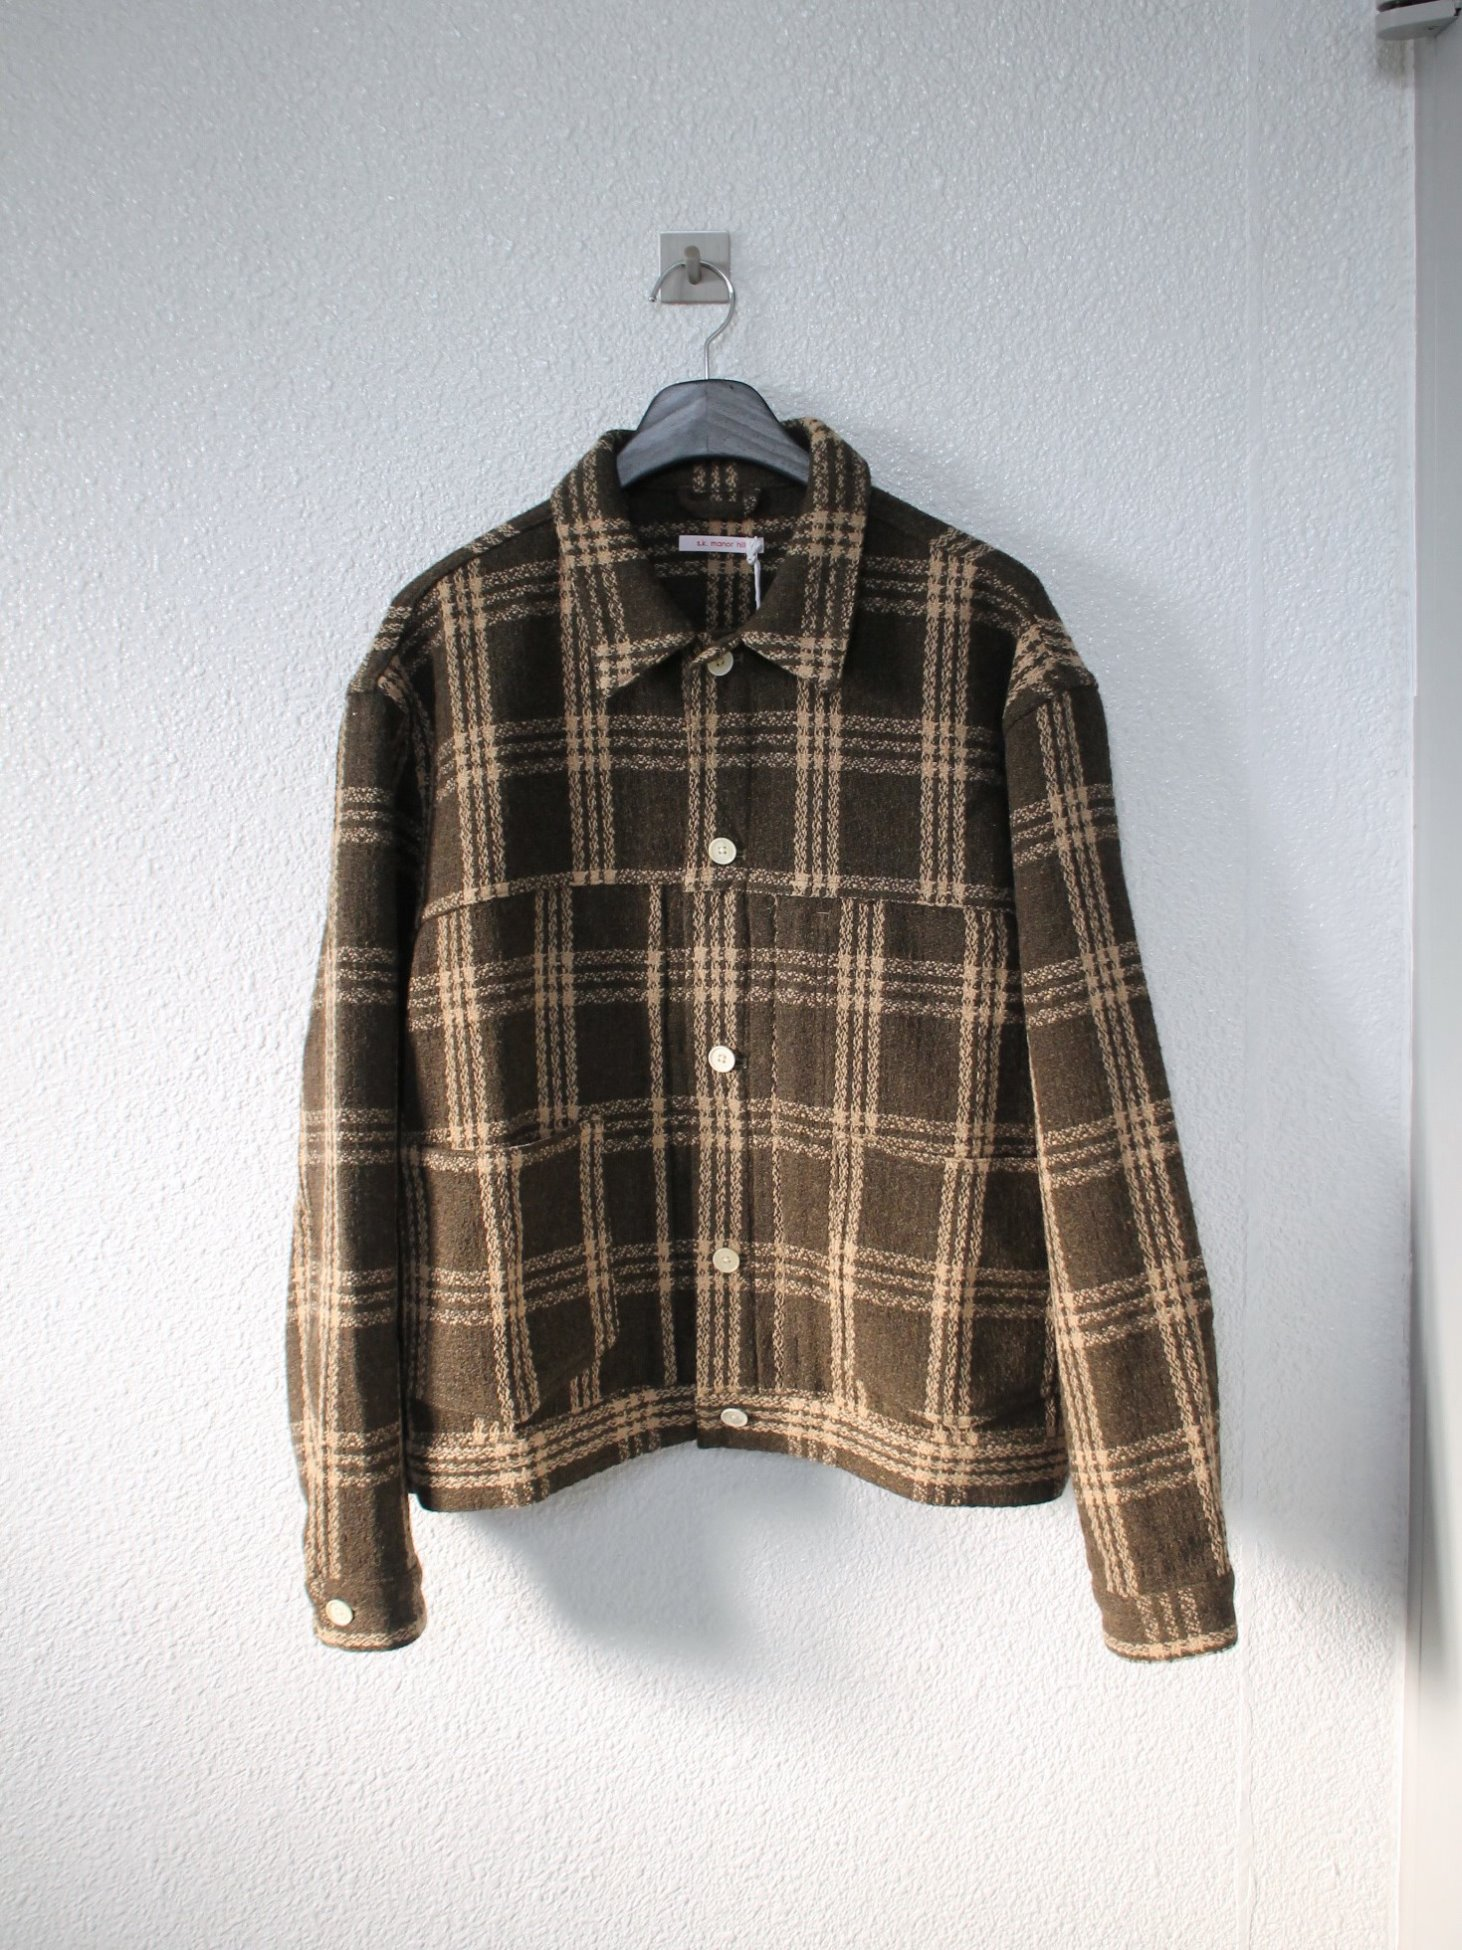 [s.k. manor hill] Type 100 Jacket - Brown Plaid